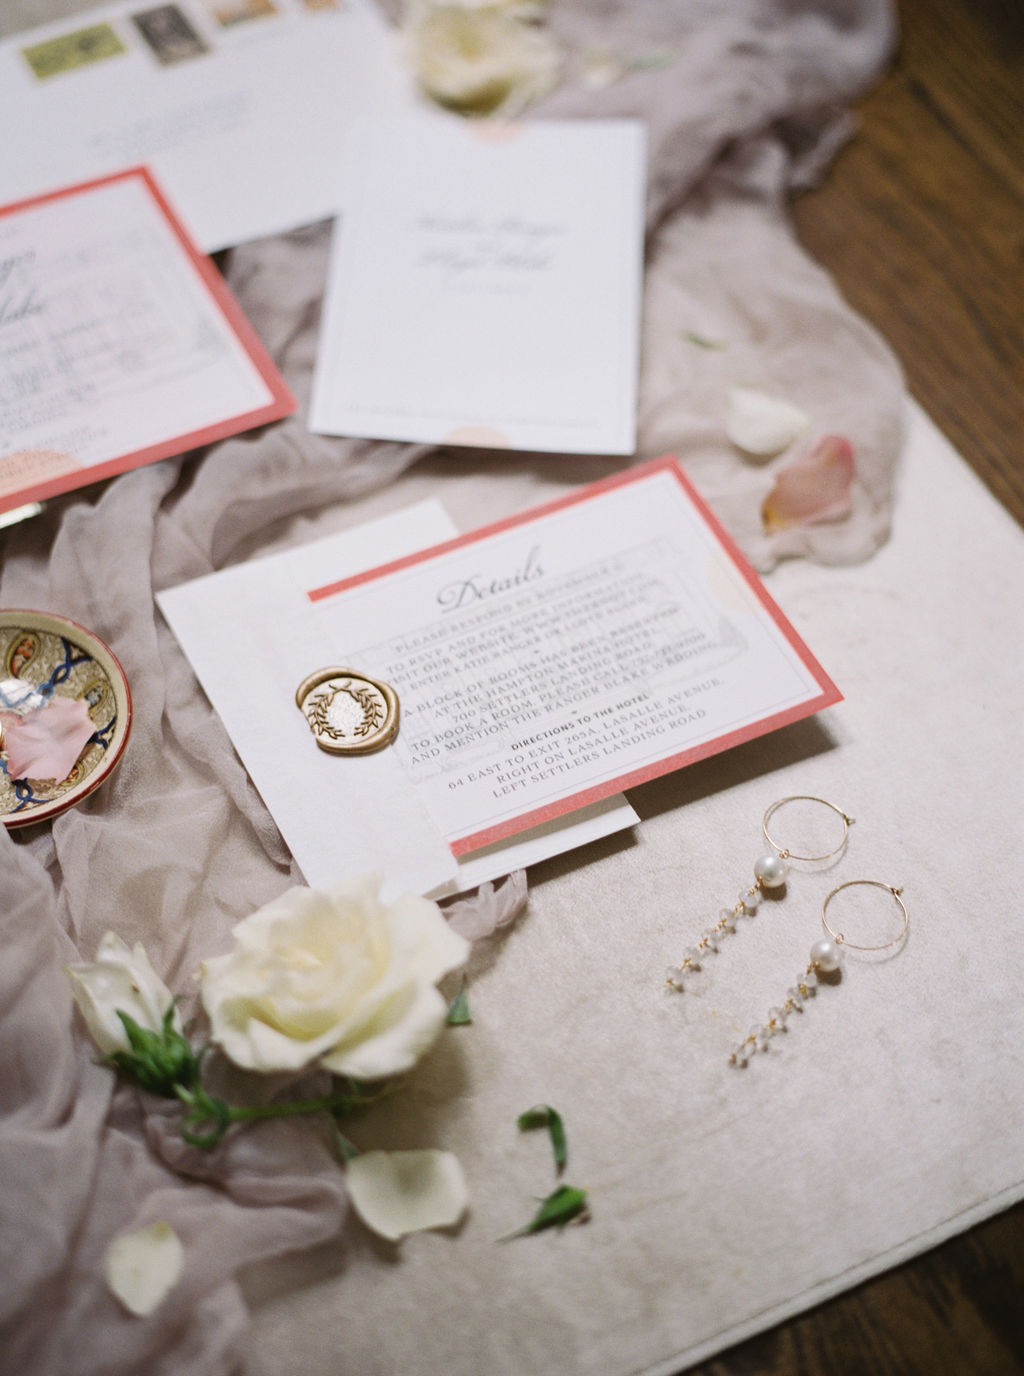 Invitation Flat Lay Styling